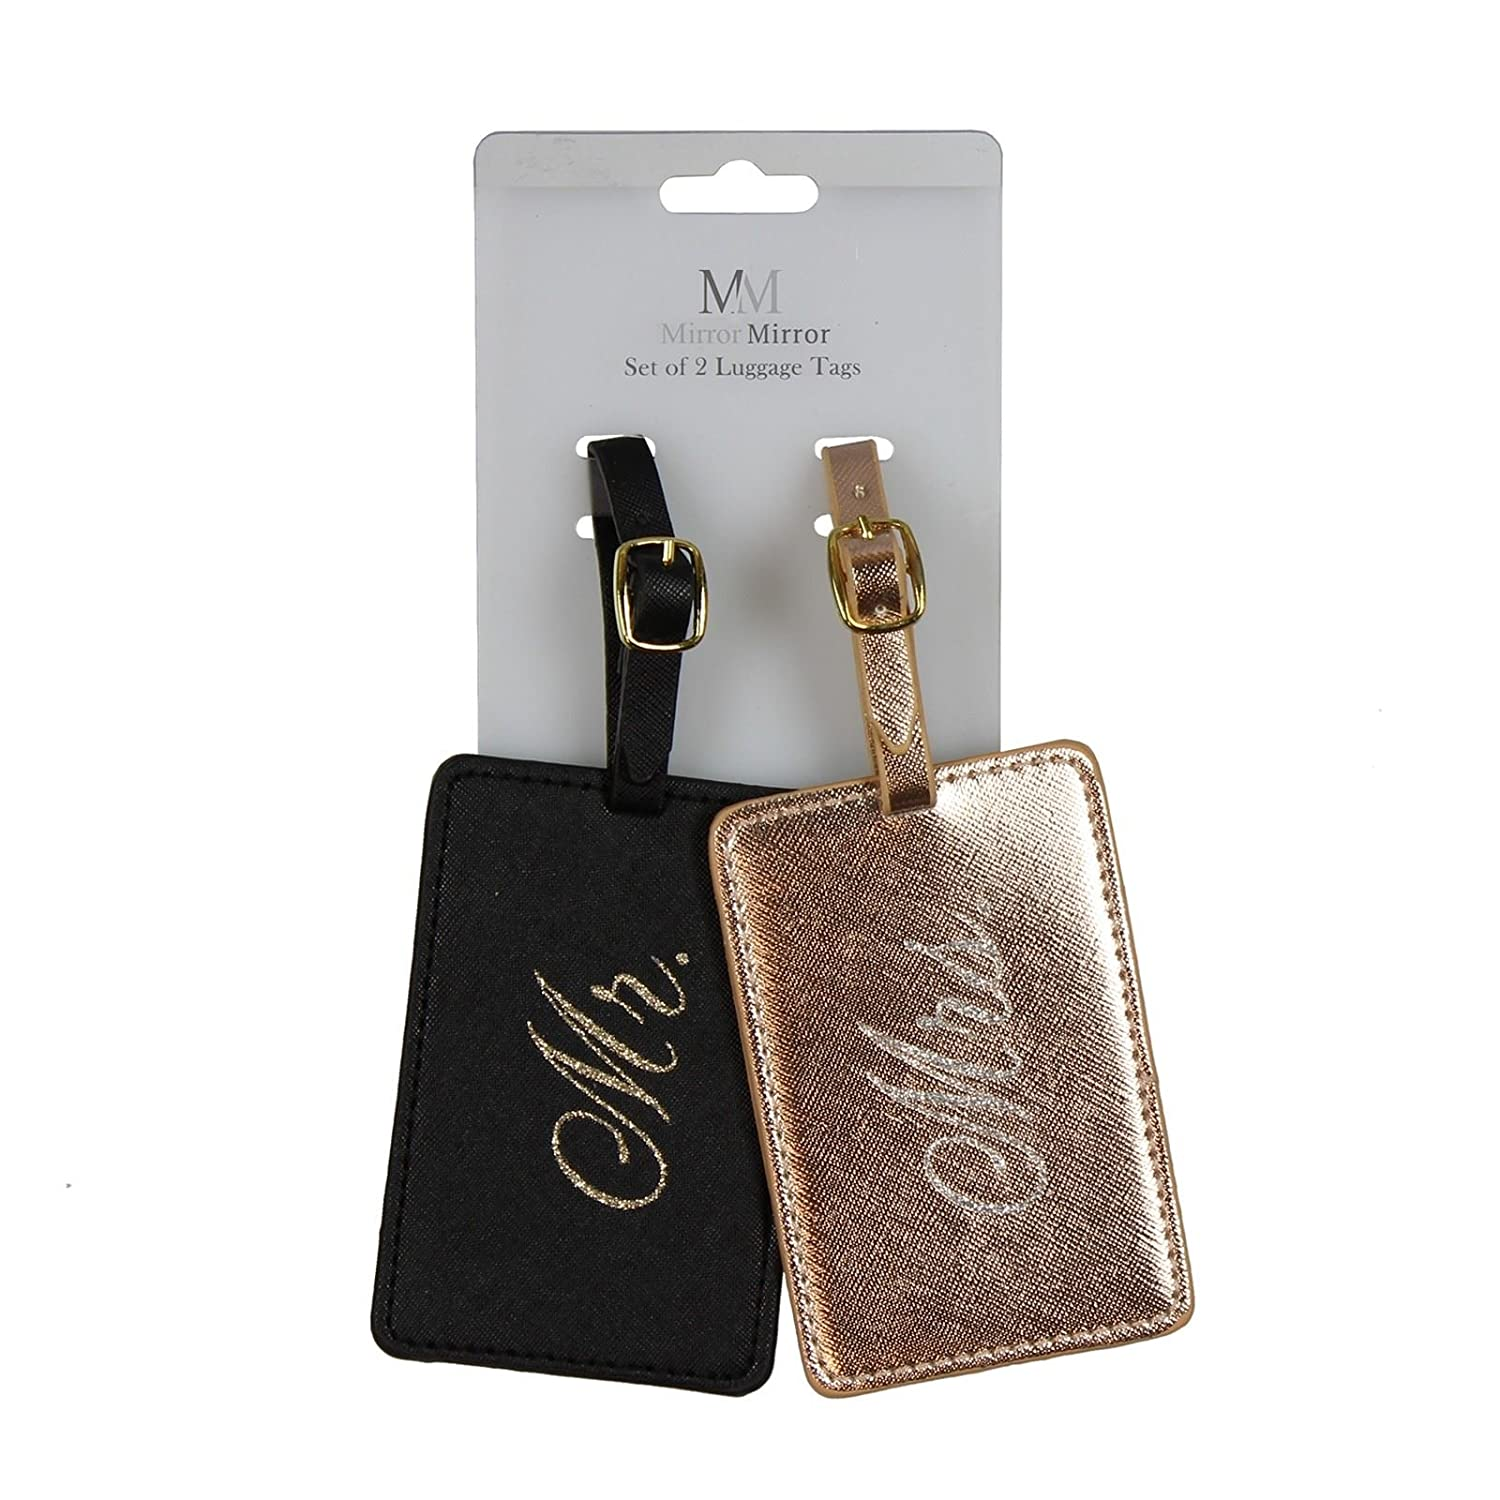 Always Forever Mr and Mrs Luggage Tags